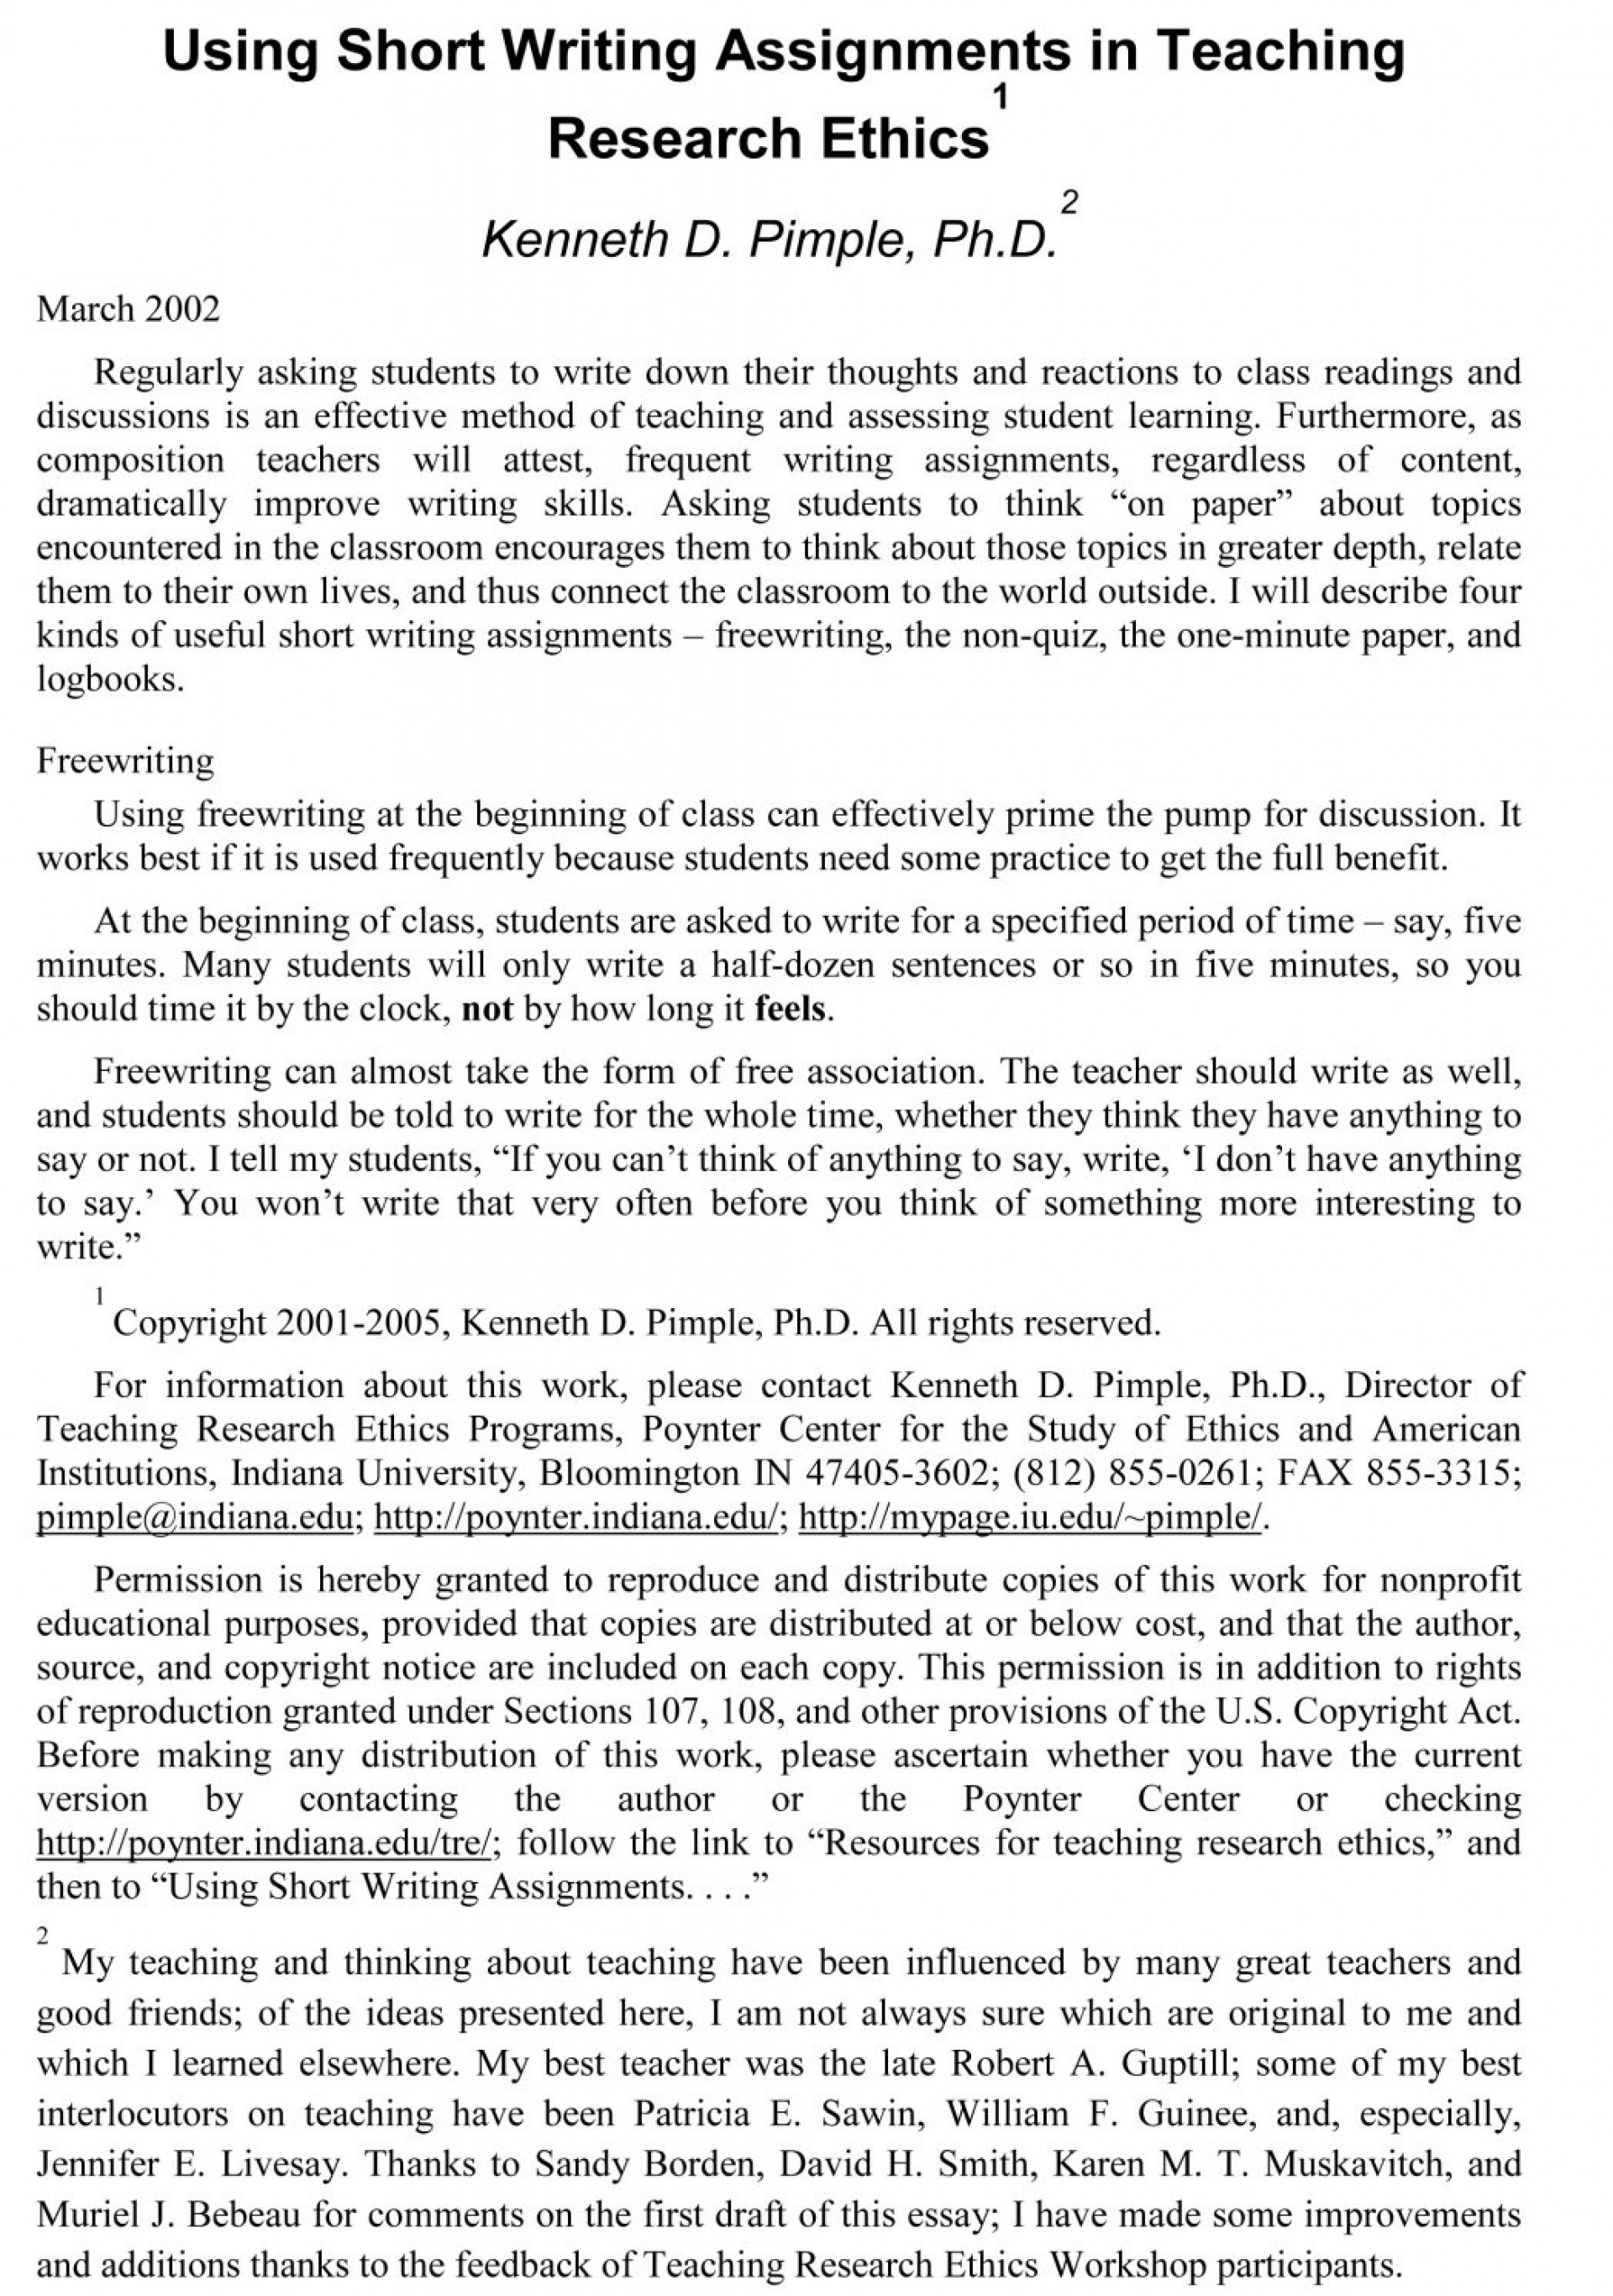 027 Essay Exampleroposal Argument Examples Arguementativeersuasive Topic Ideas For College Sample Tea Descriptive Admission Studentsaper Research Application Unique Proposal 1920